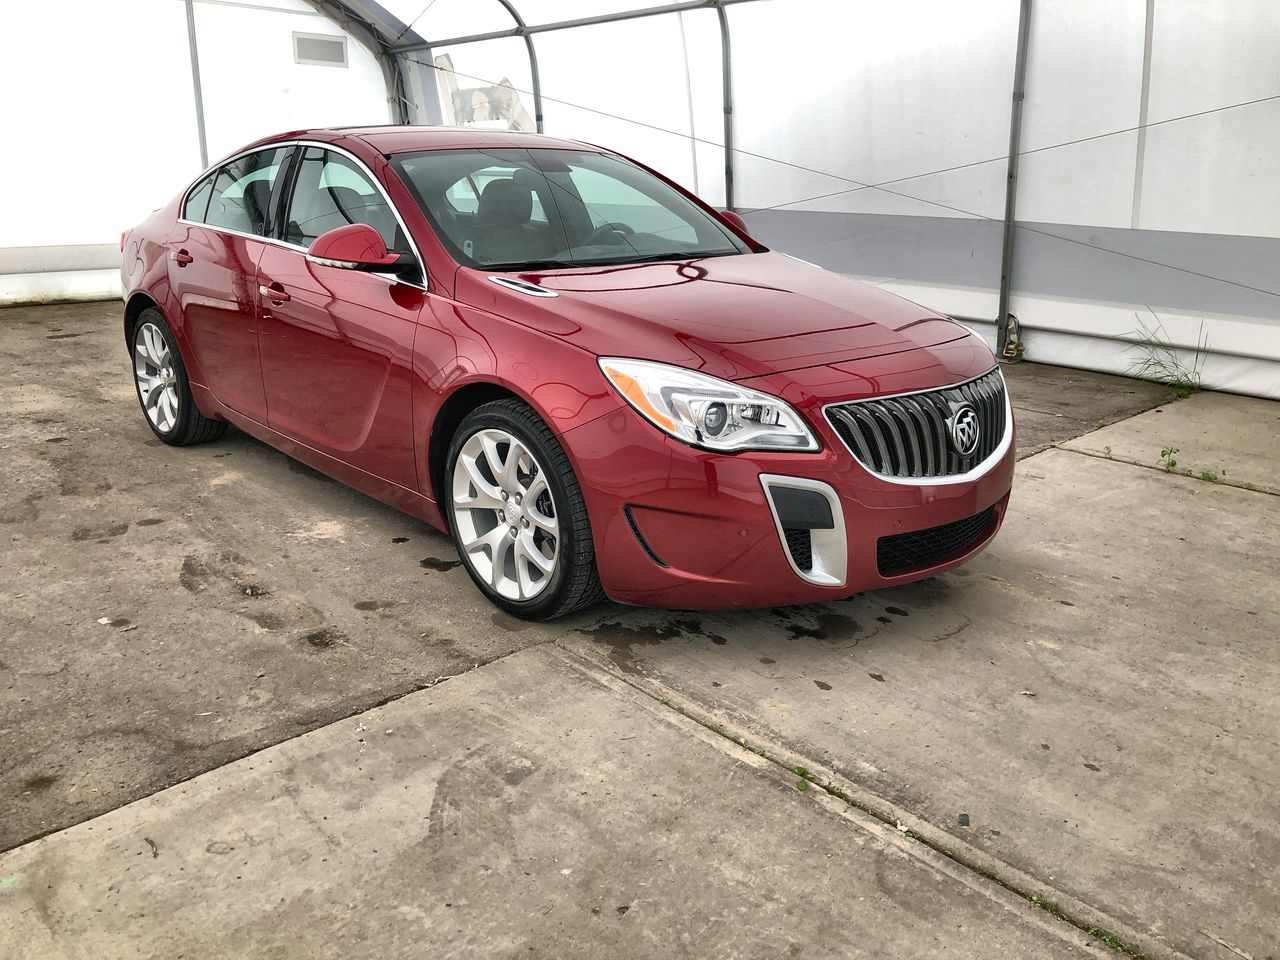 2015 Buick Regal Gs (N6539A) Main Image